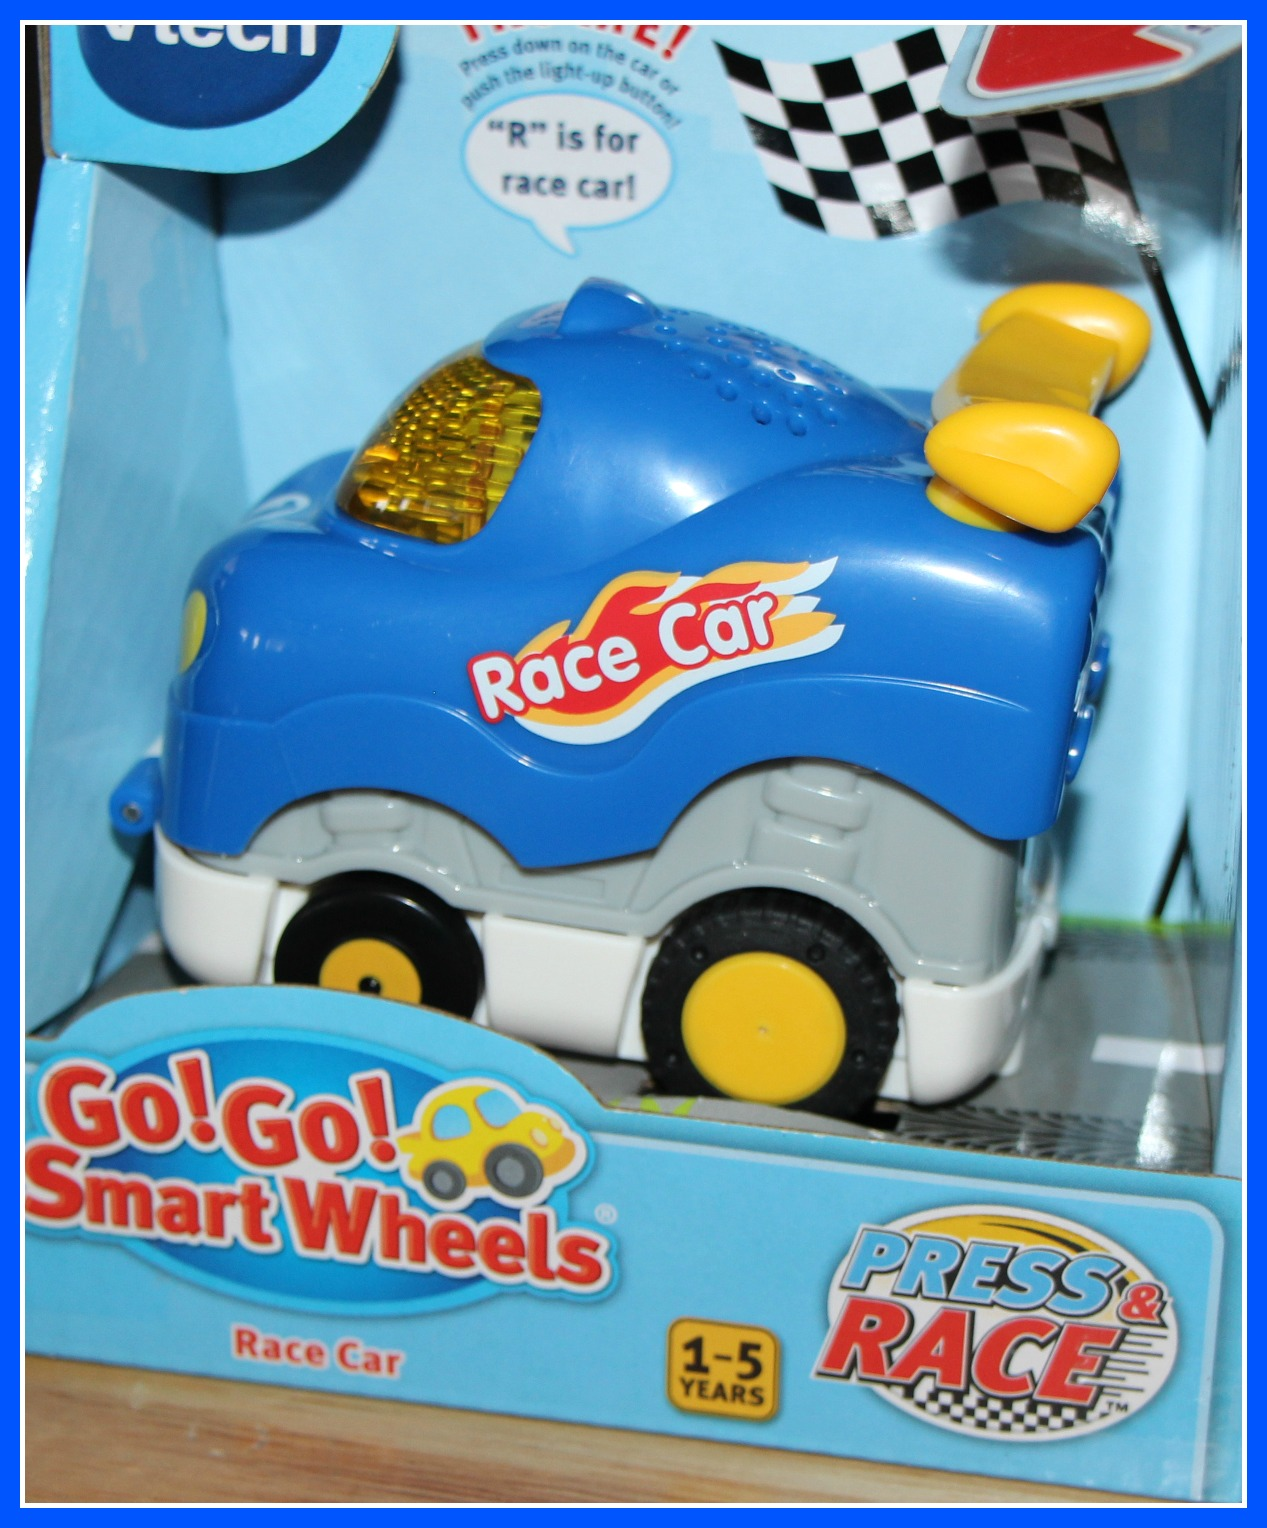 Get On The Move with Go! Go! Smart Wheels from VTech